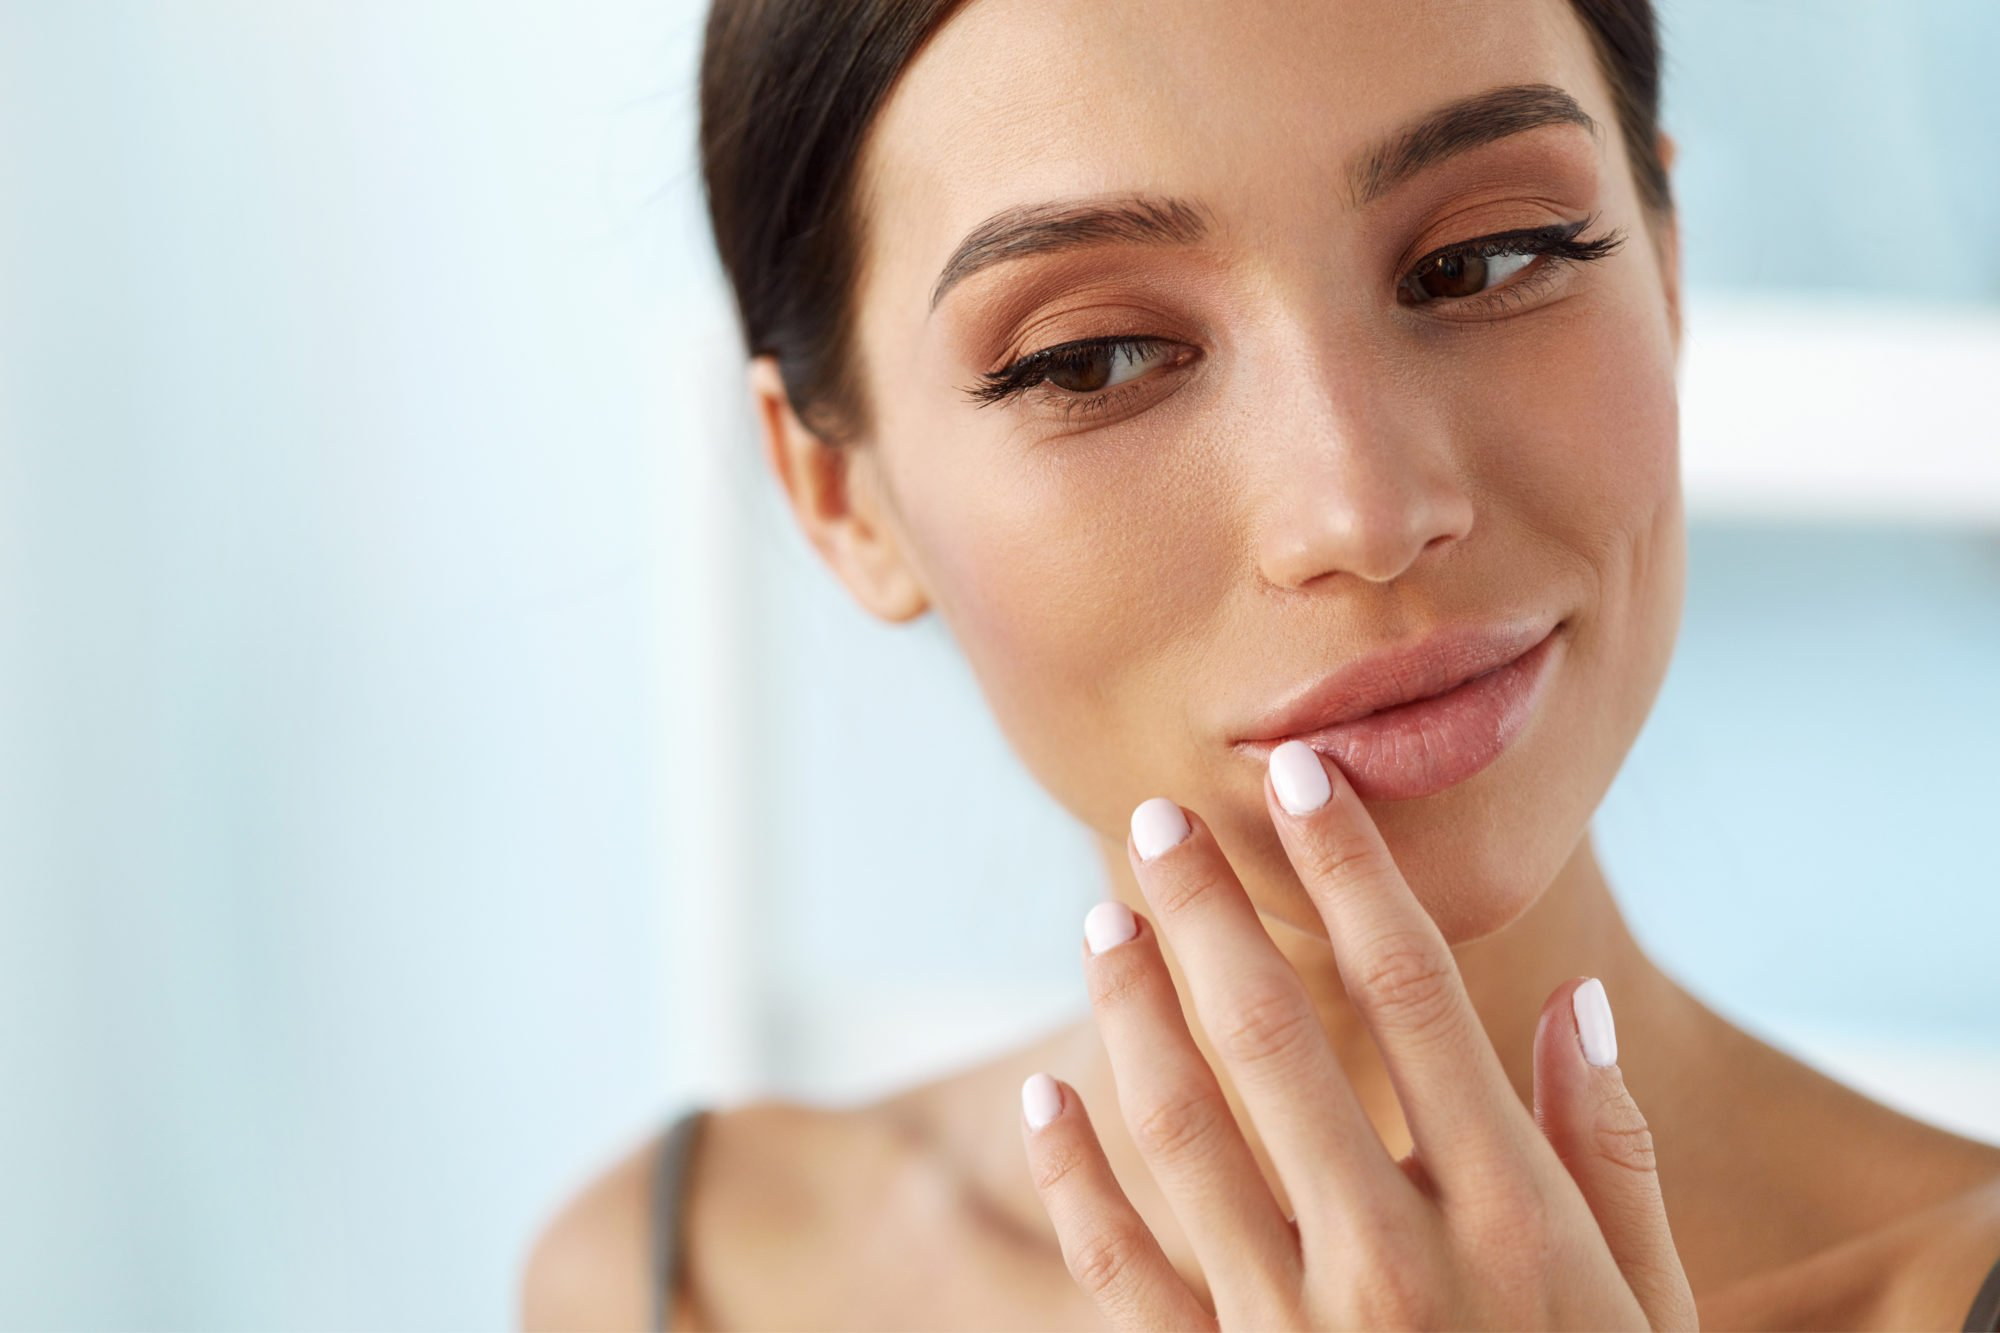 The Eight Simple Rules of Lip and Hand Care